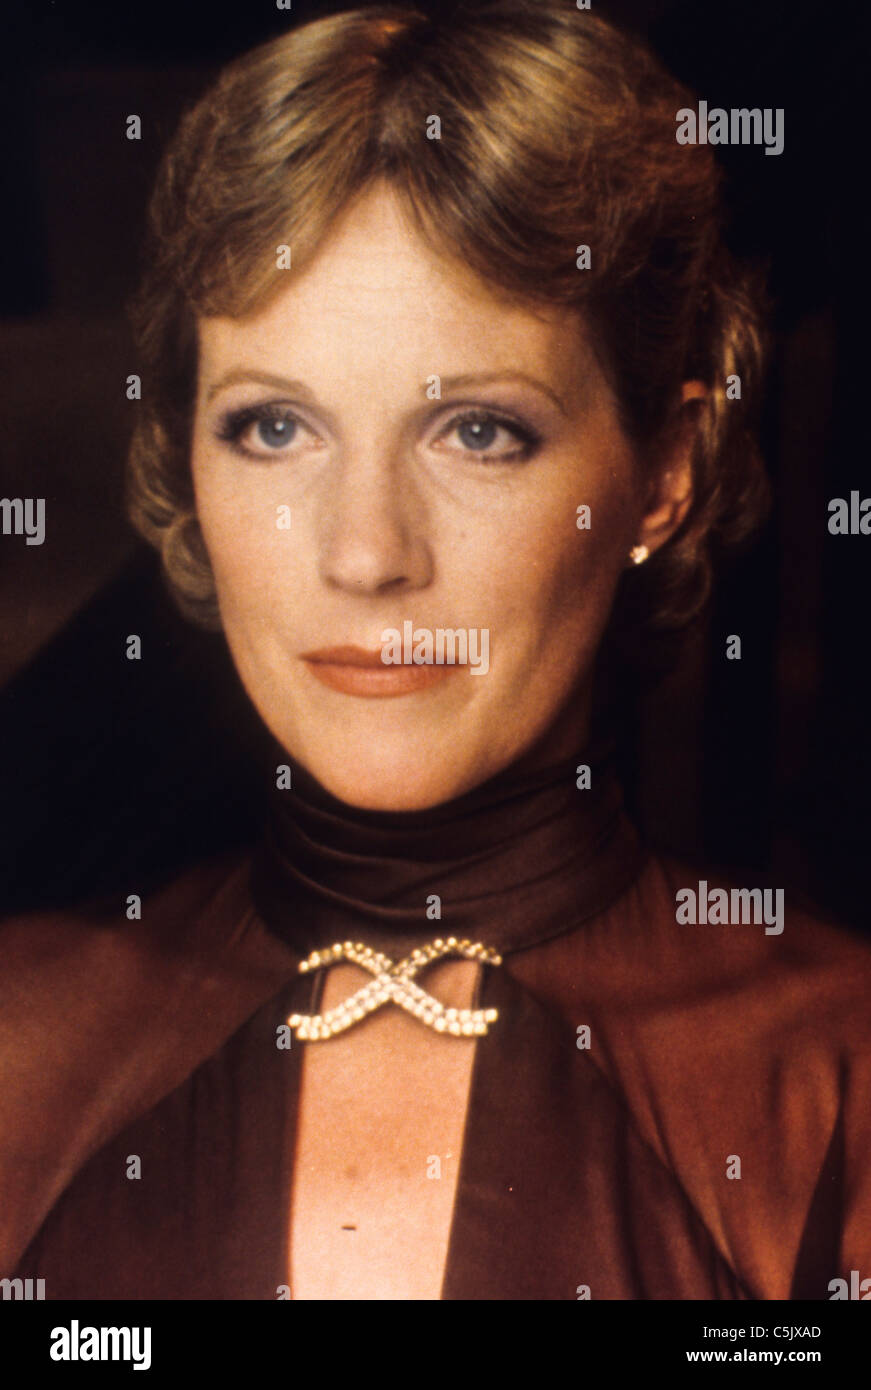 julie andrews,1980 - Stock Image